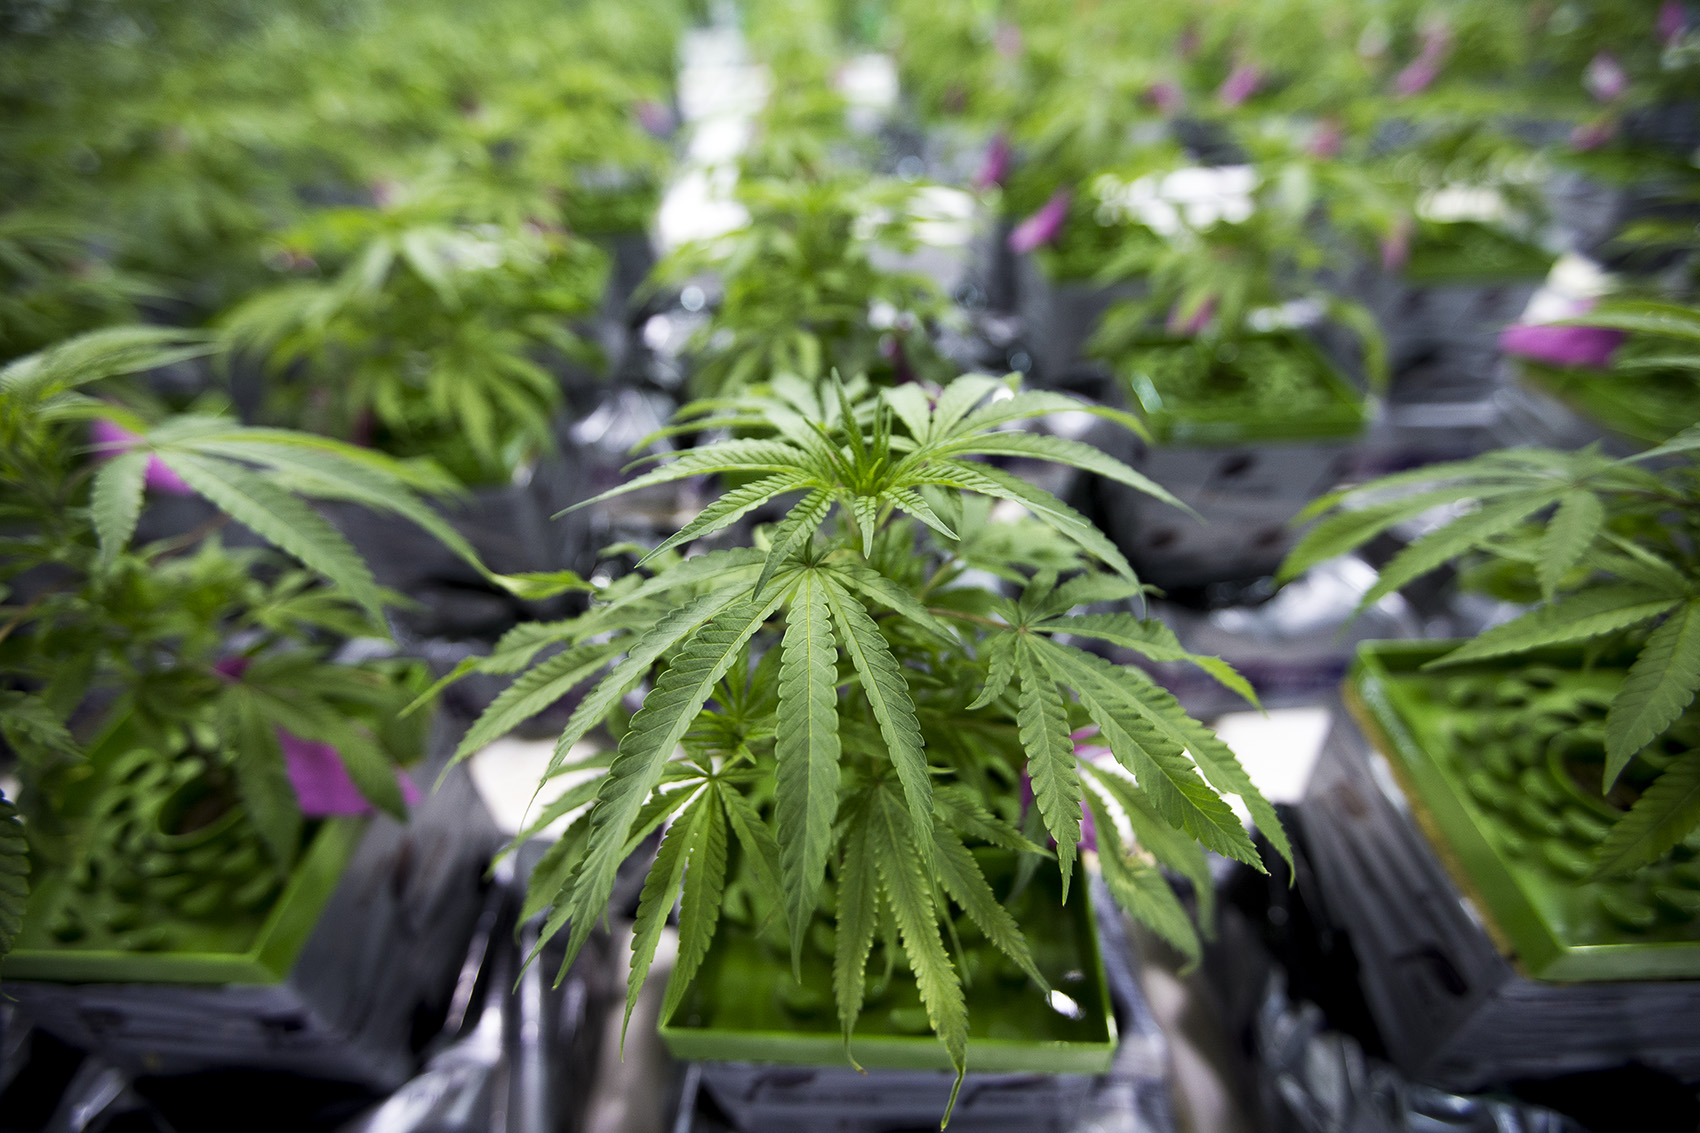 Retail Value Of Car >> Mass. House To Take Up Pot Bill This Week | WBUR News